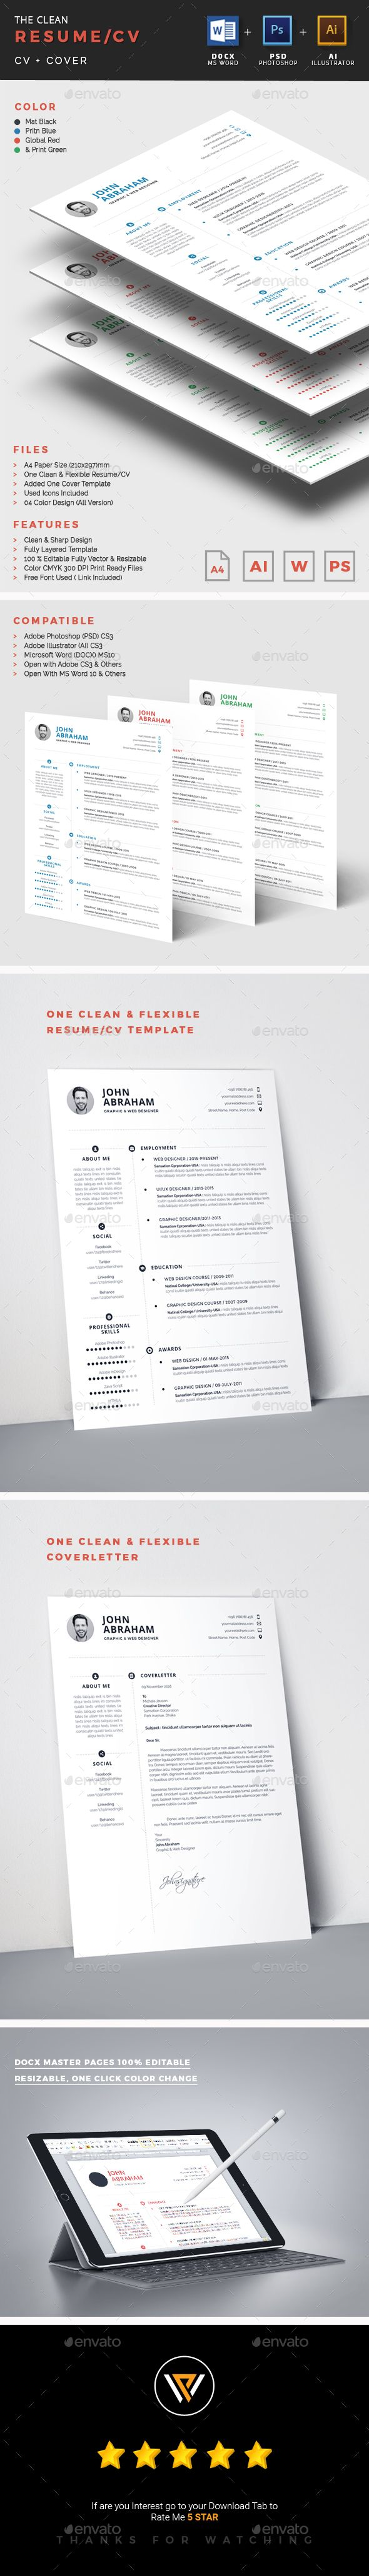 The Clean Resume CV Design A4